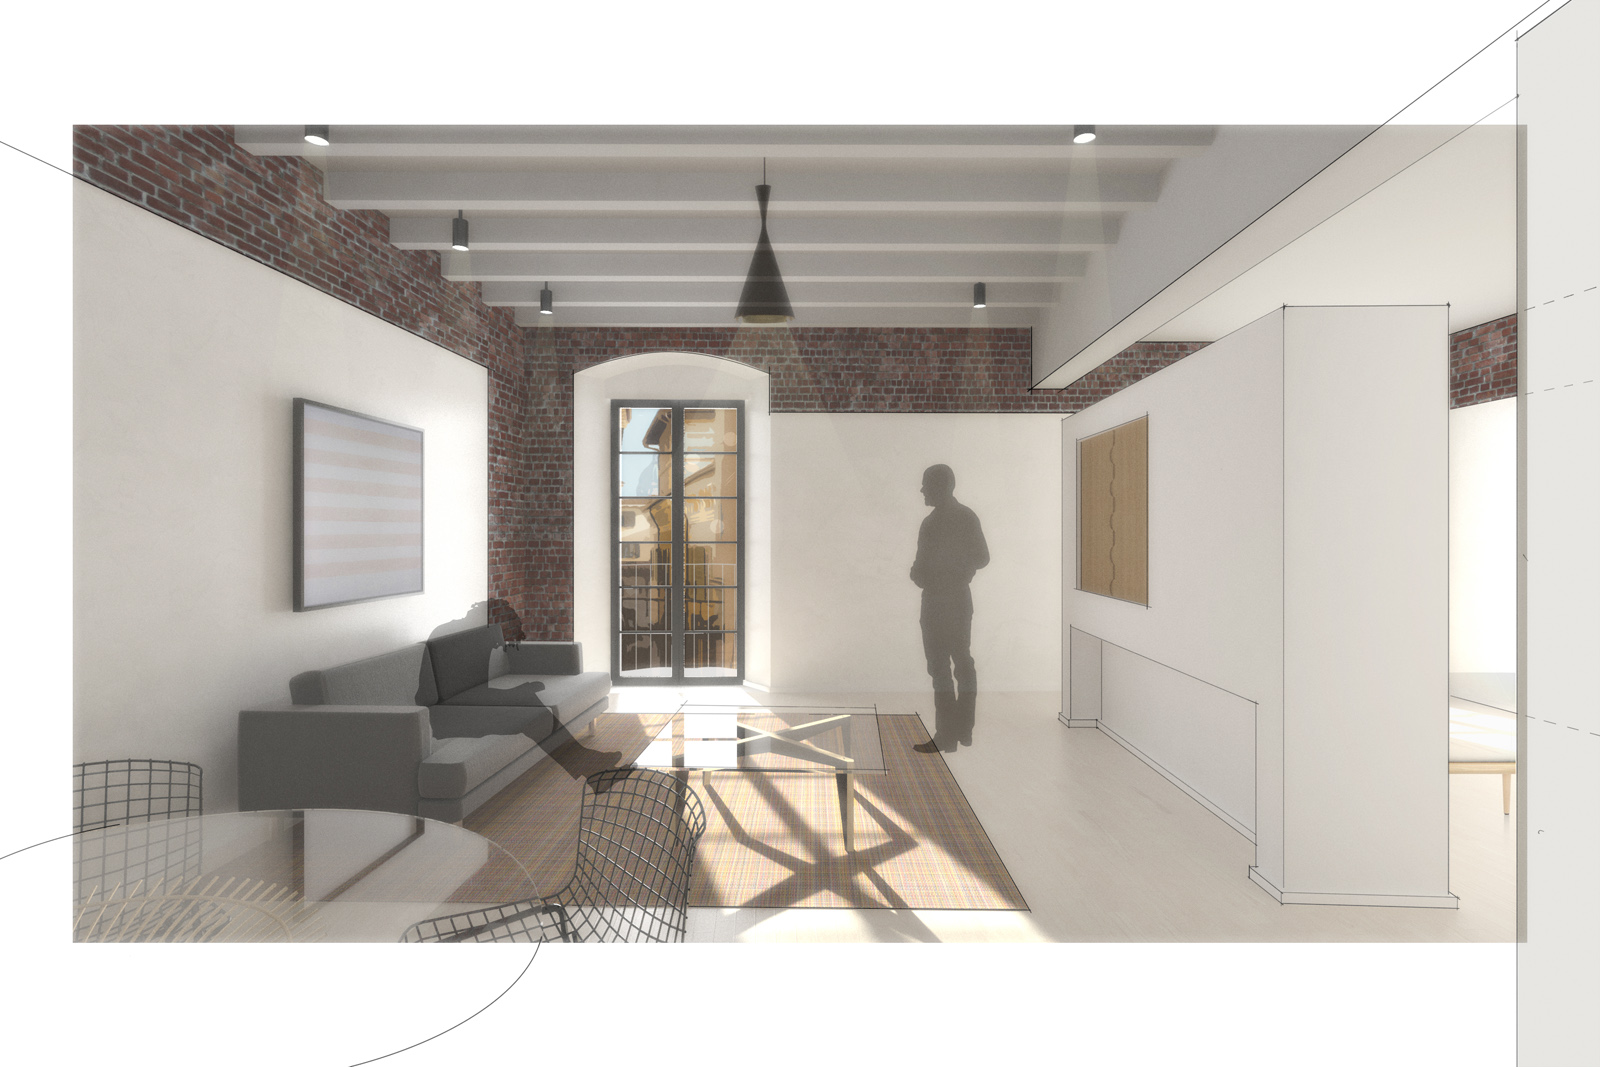 Rendering of the Calza Studio Apartment.